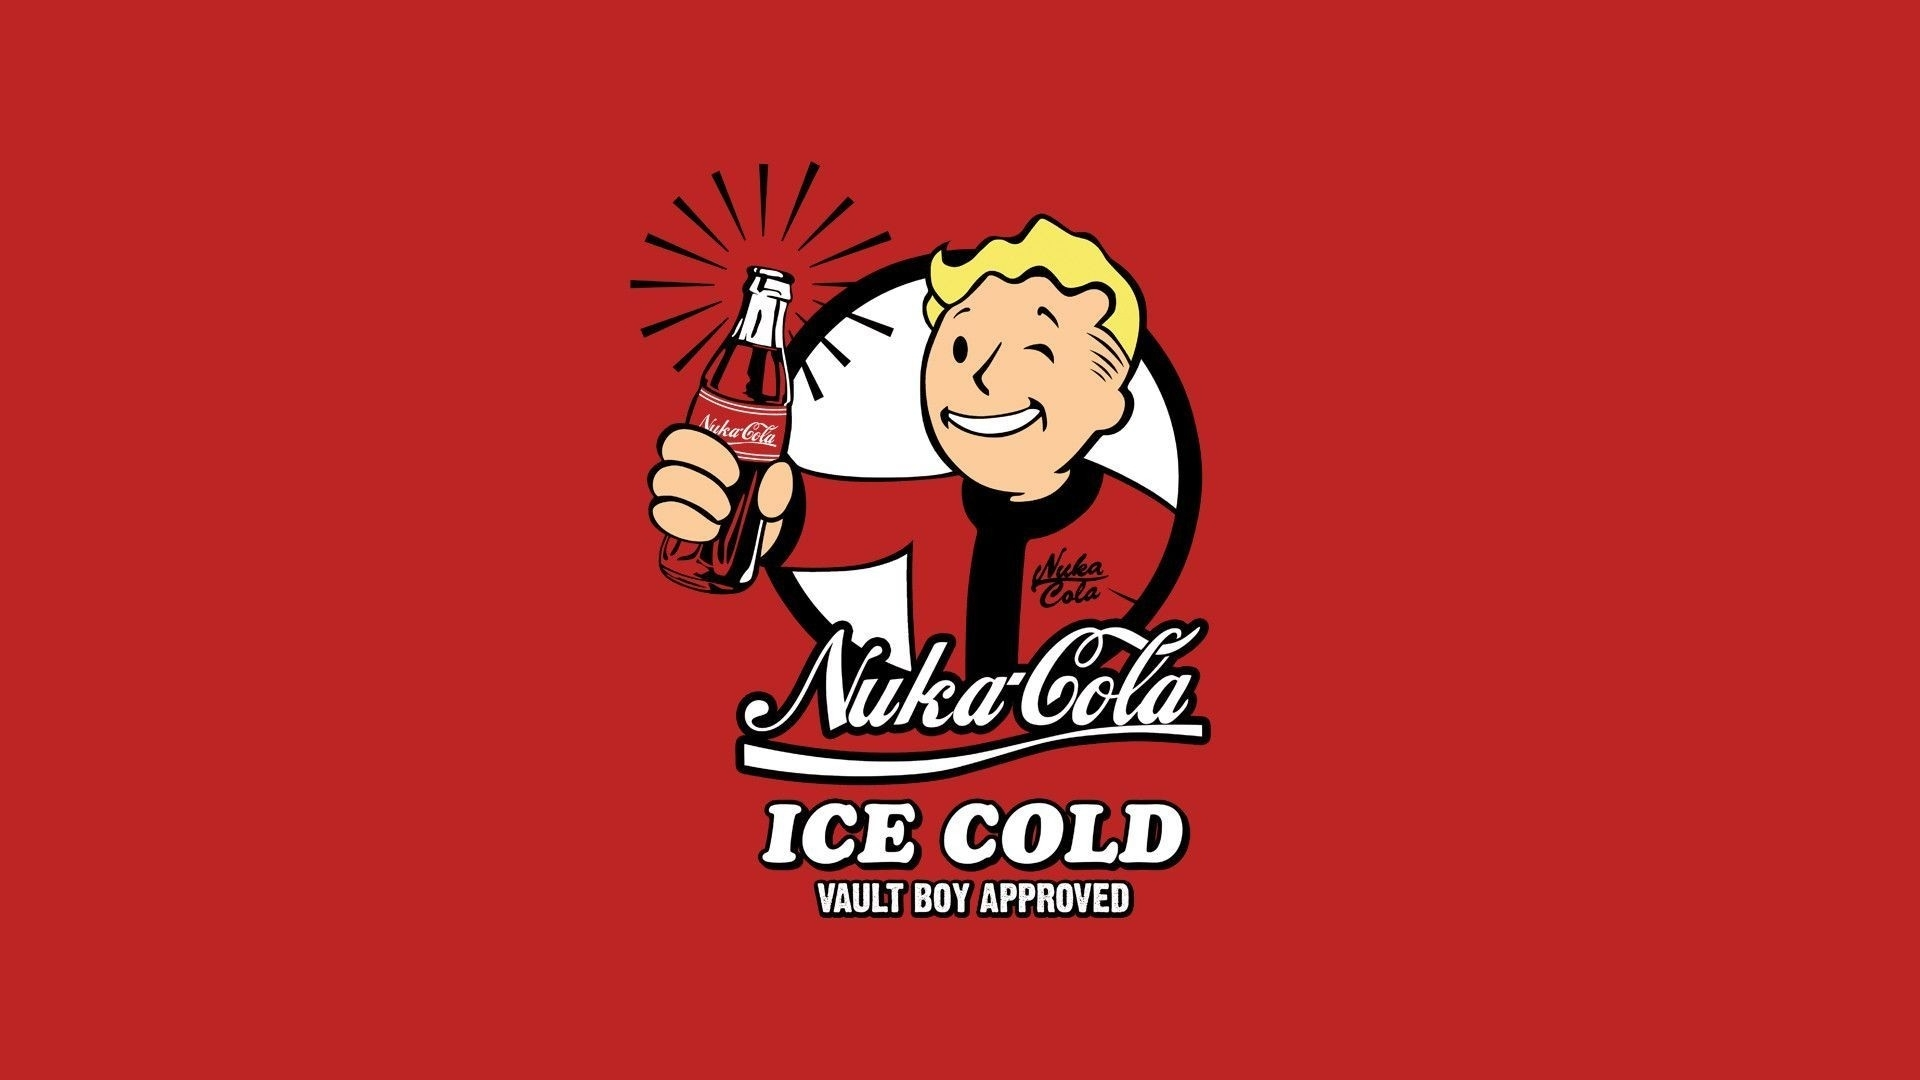 nuka cola wallpaper ·① download free stunning backgrounds for